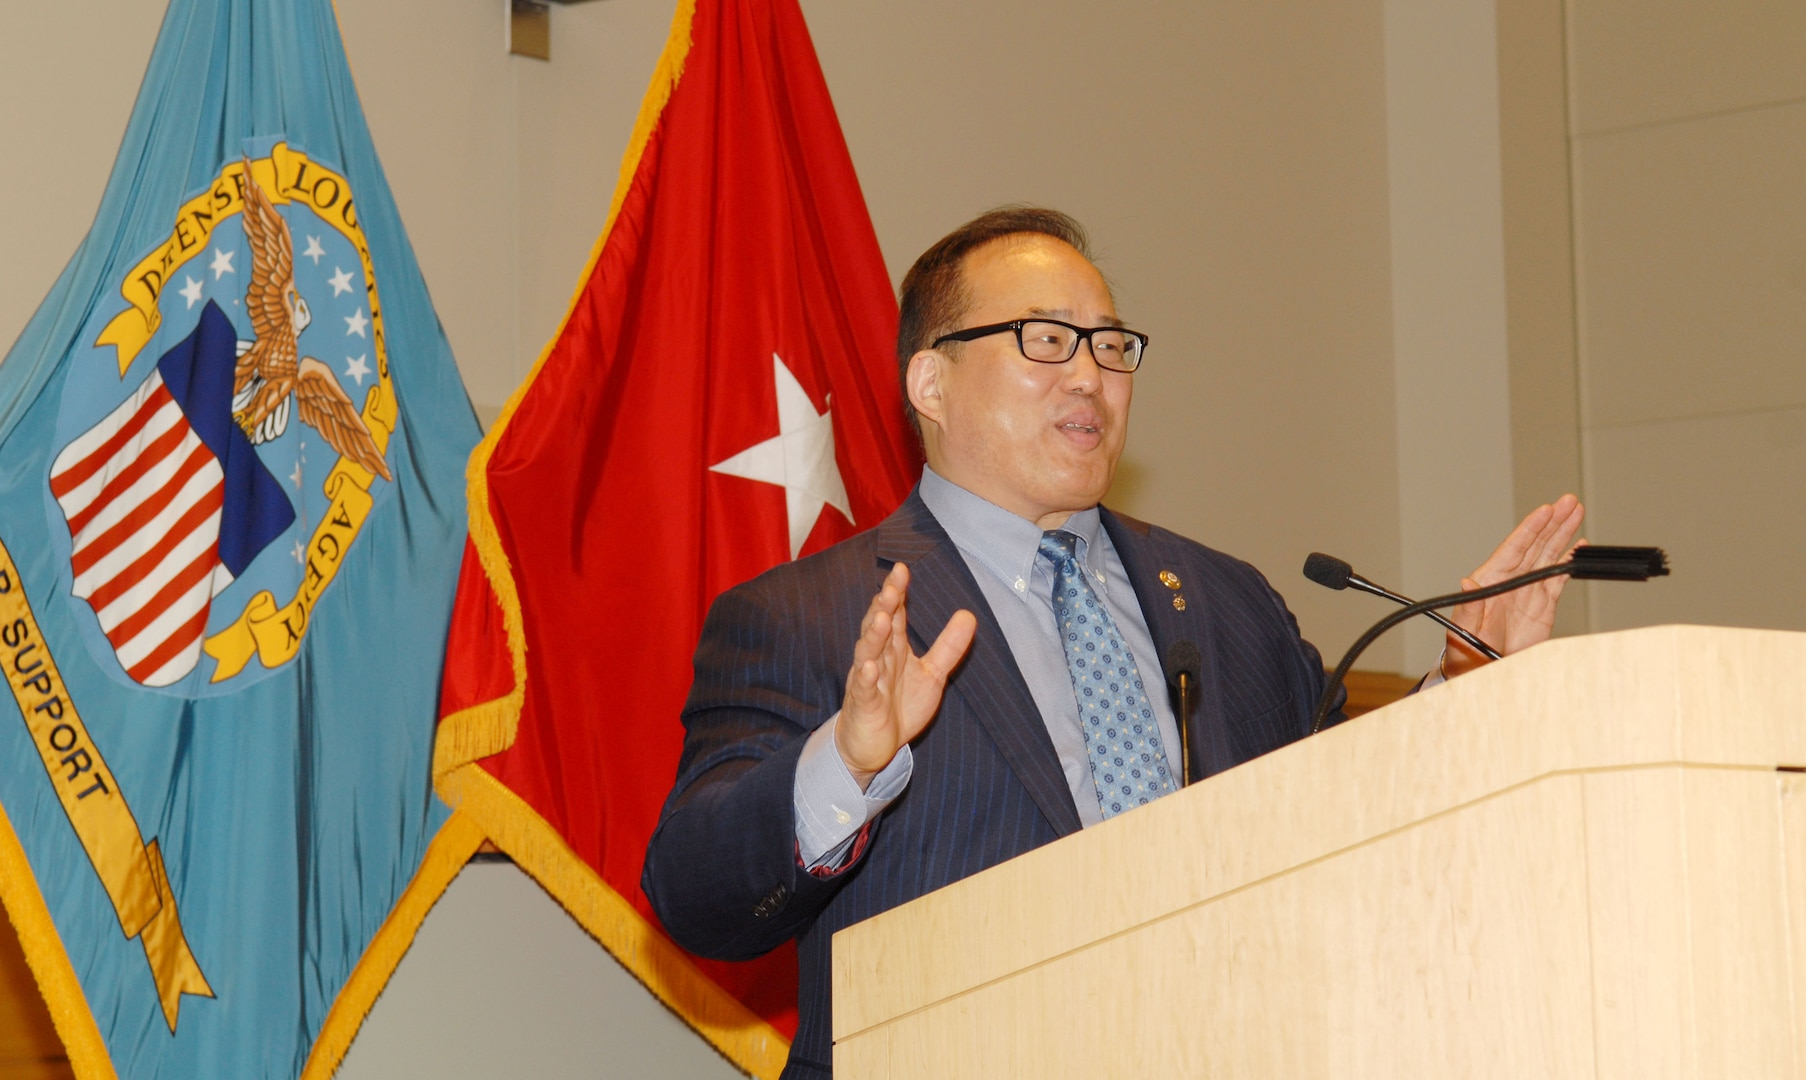 Philadelphia City Council member David Oh shared stories of his personal and family's history with Naval Support Activity Philadelphia employees during an Asian American Pacific Islander Heritage Month program May 25, 2016. Oh recanted details of his Korean relatives' migration to America from China and Japan, and the story of his cousin, In Ho Oh, a graduate student at the University of Pennsylvania who was murdered by a group of teenage boys in 1958.